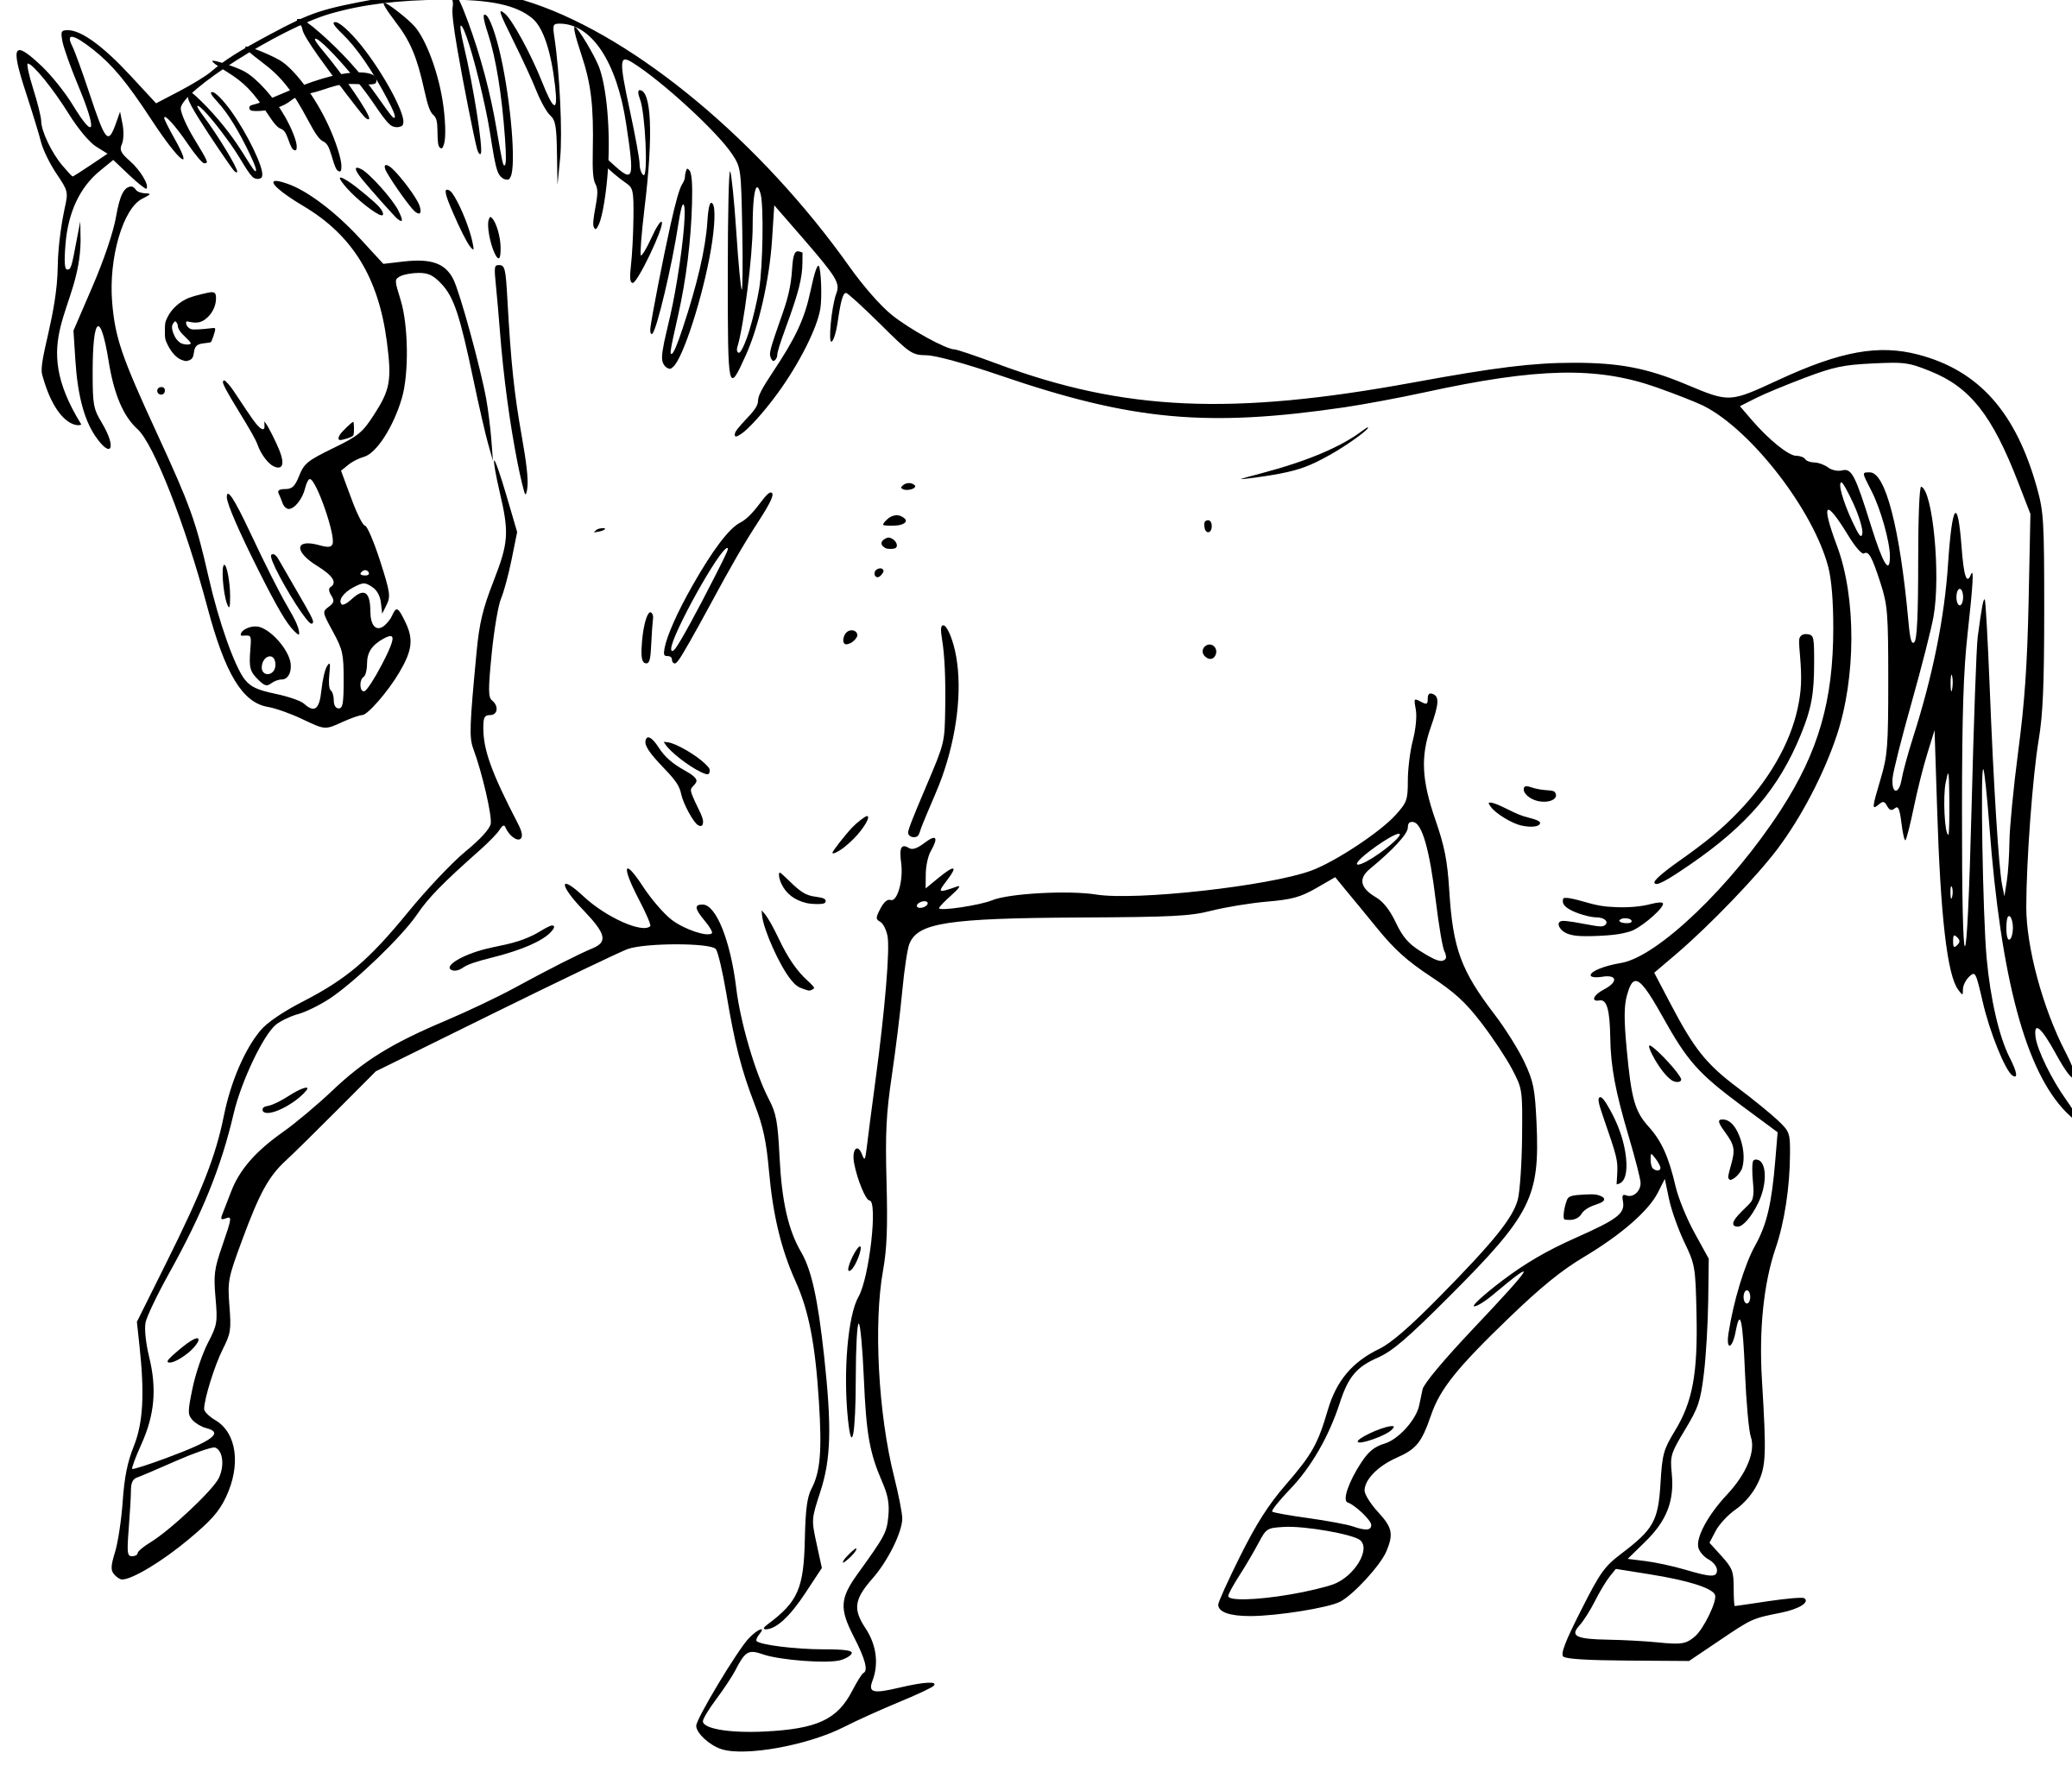 Png clipart white horse hind legs. Drawing outlines at getdrawings